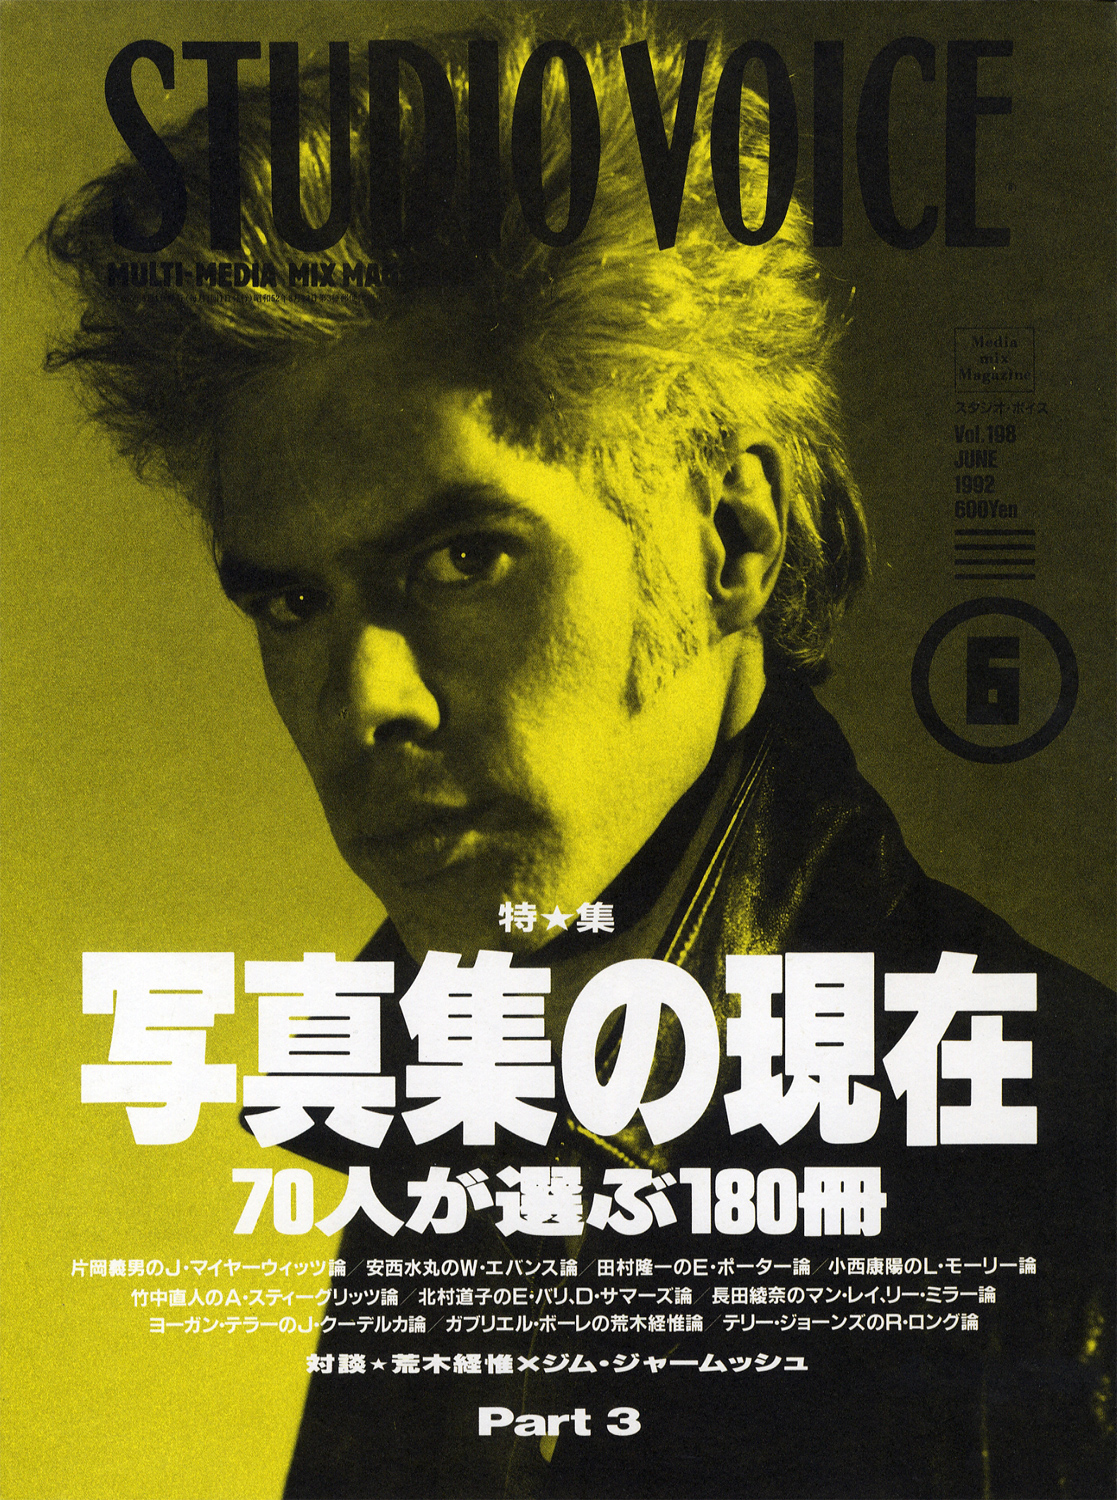 STUDIO VOICE MULTI-MEDIA MIX MAGAZINE/スタジオ・ボイス 1992年6月号 Vol.198